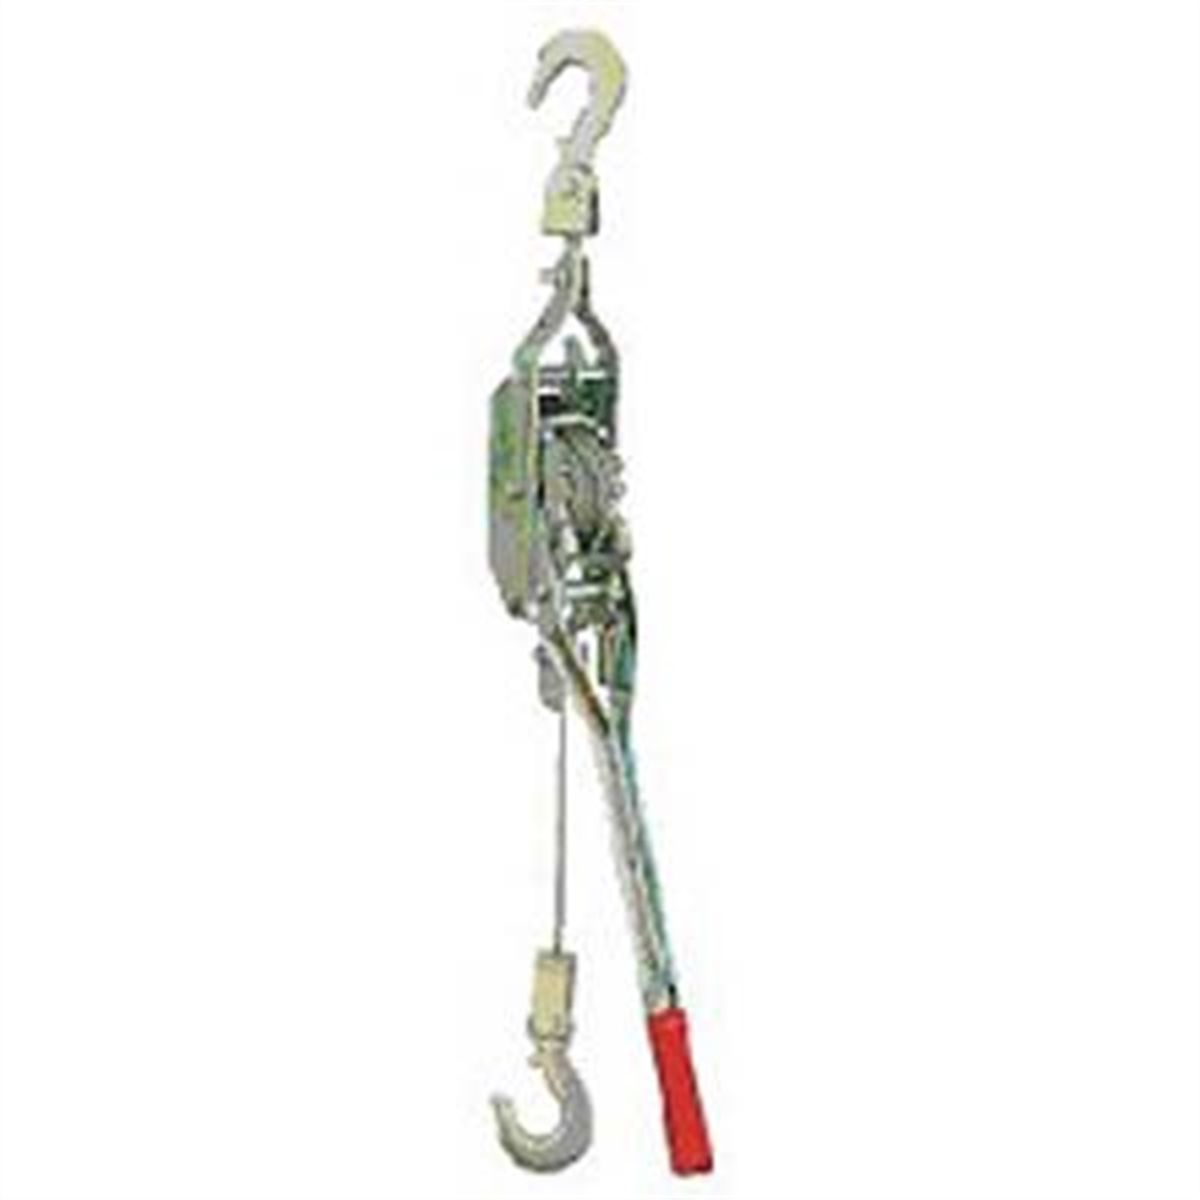 American Power Pull 18500 12-Ft 1-Ton Come-A-Long Puller